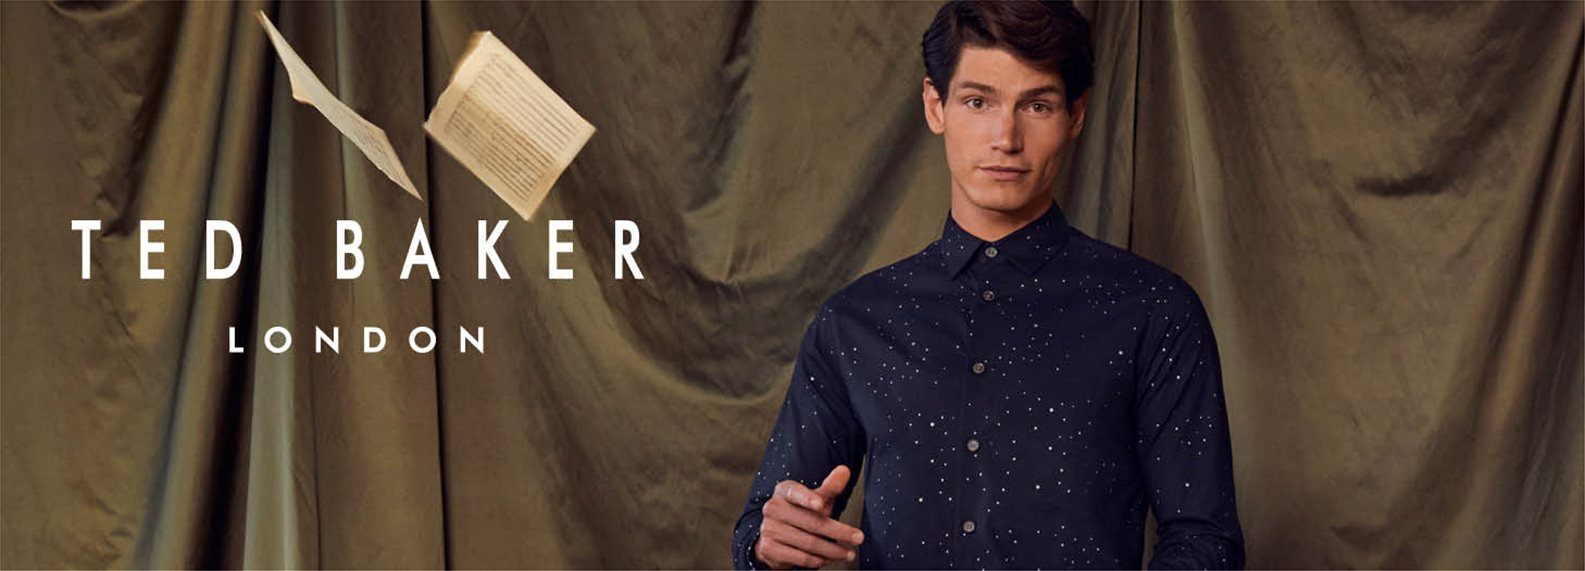 TED BAKER/ OFFERS  image